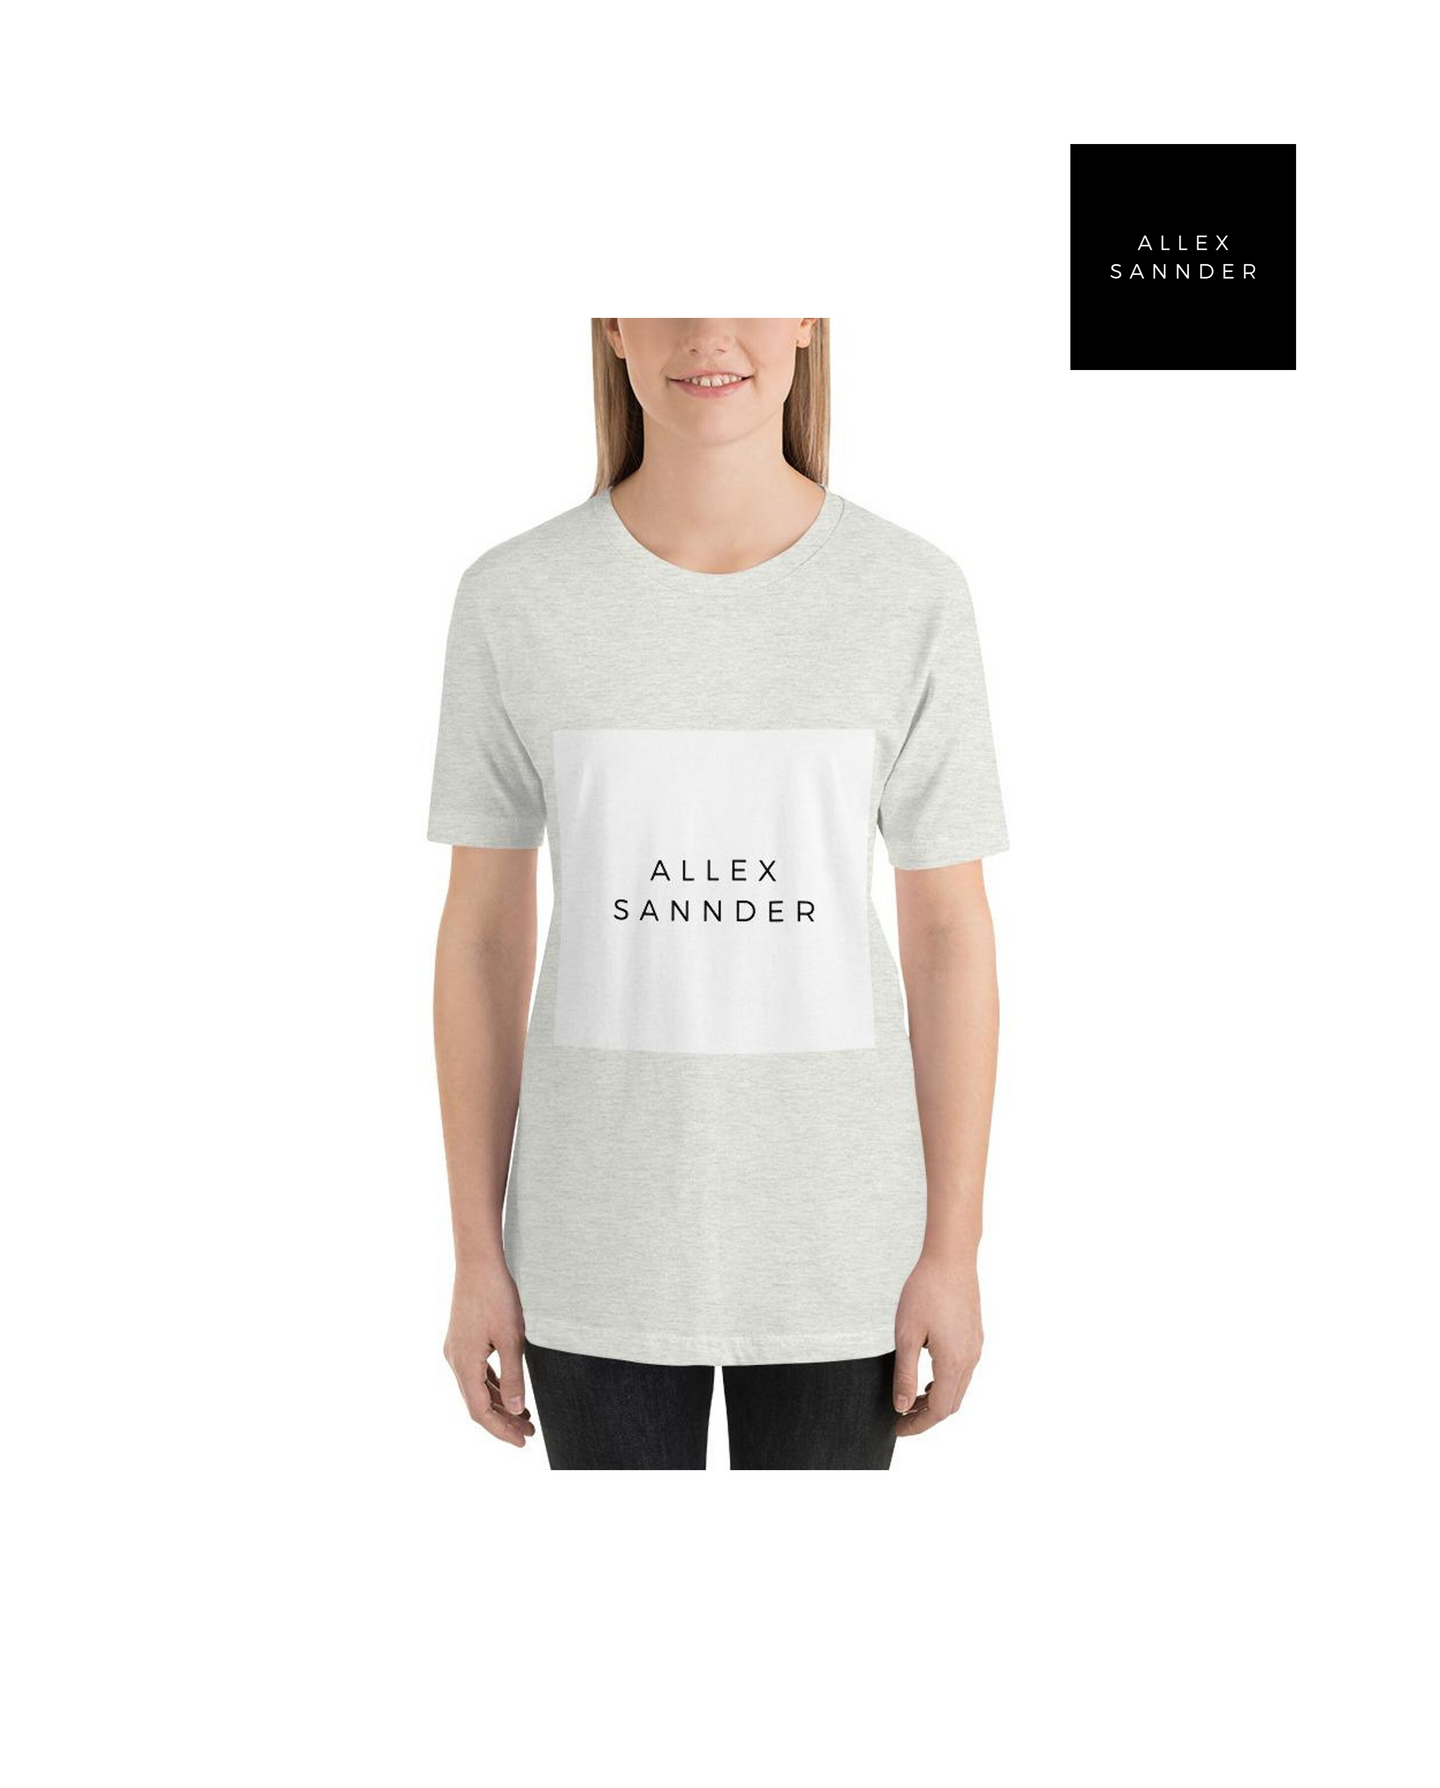 ALLEXSANNDER | WOMENS BASIC TEE WHITE